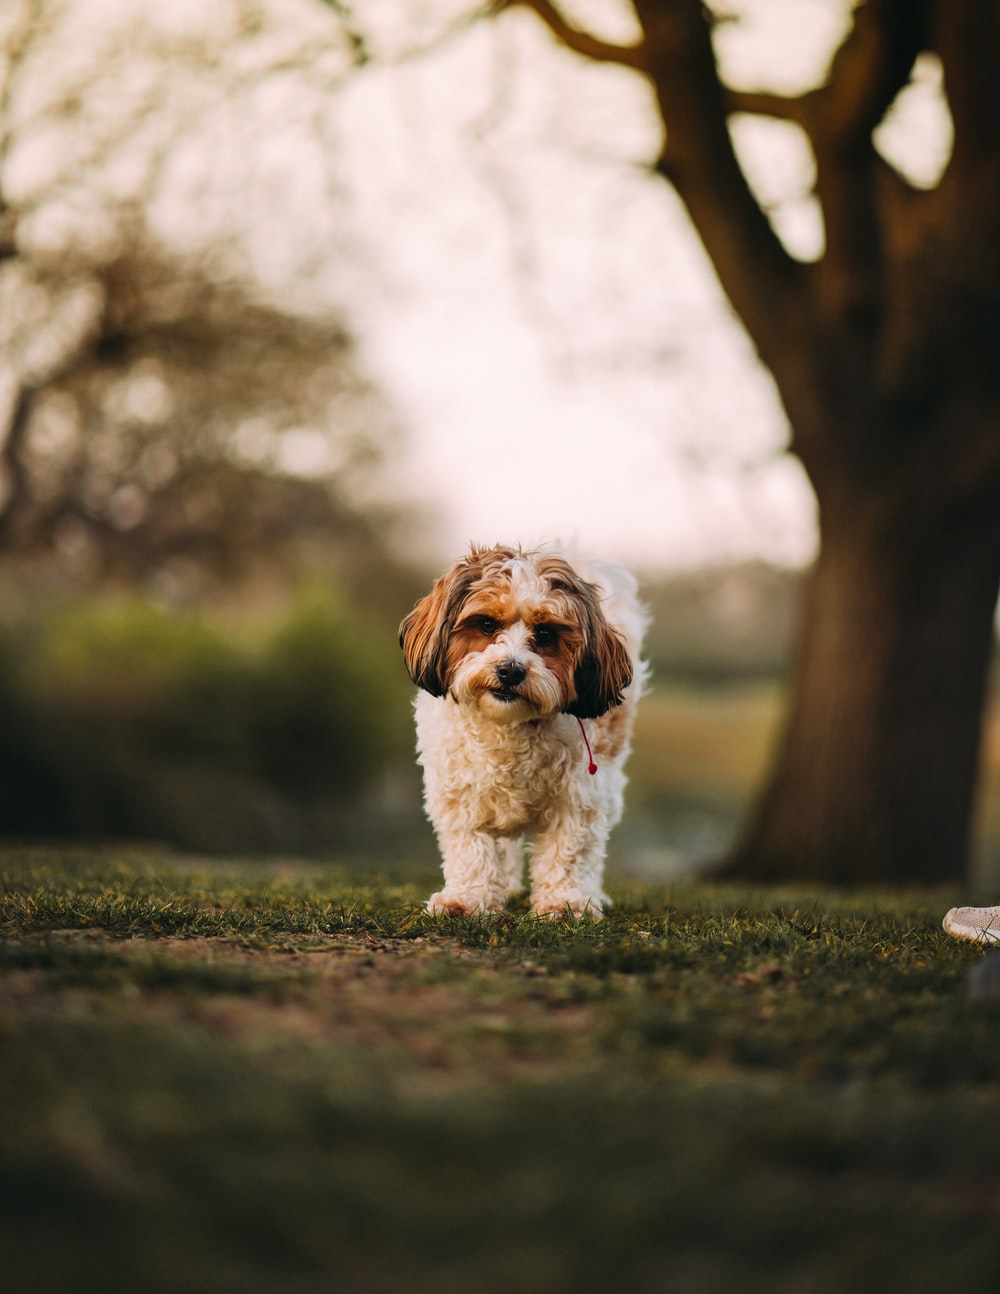 white and brown long coated small dog on green grass during daytime